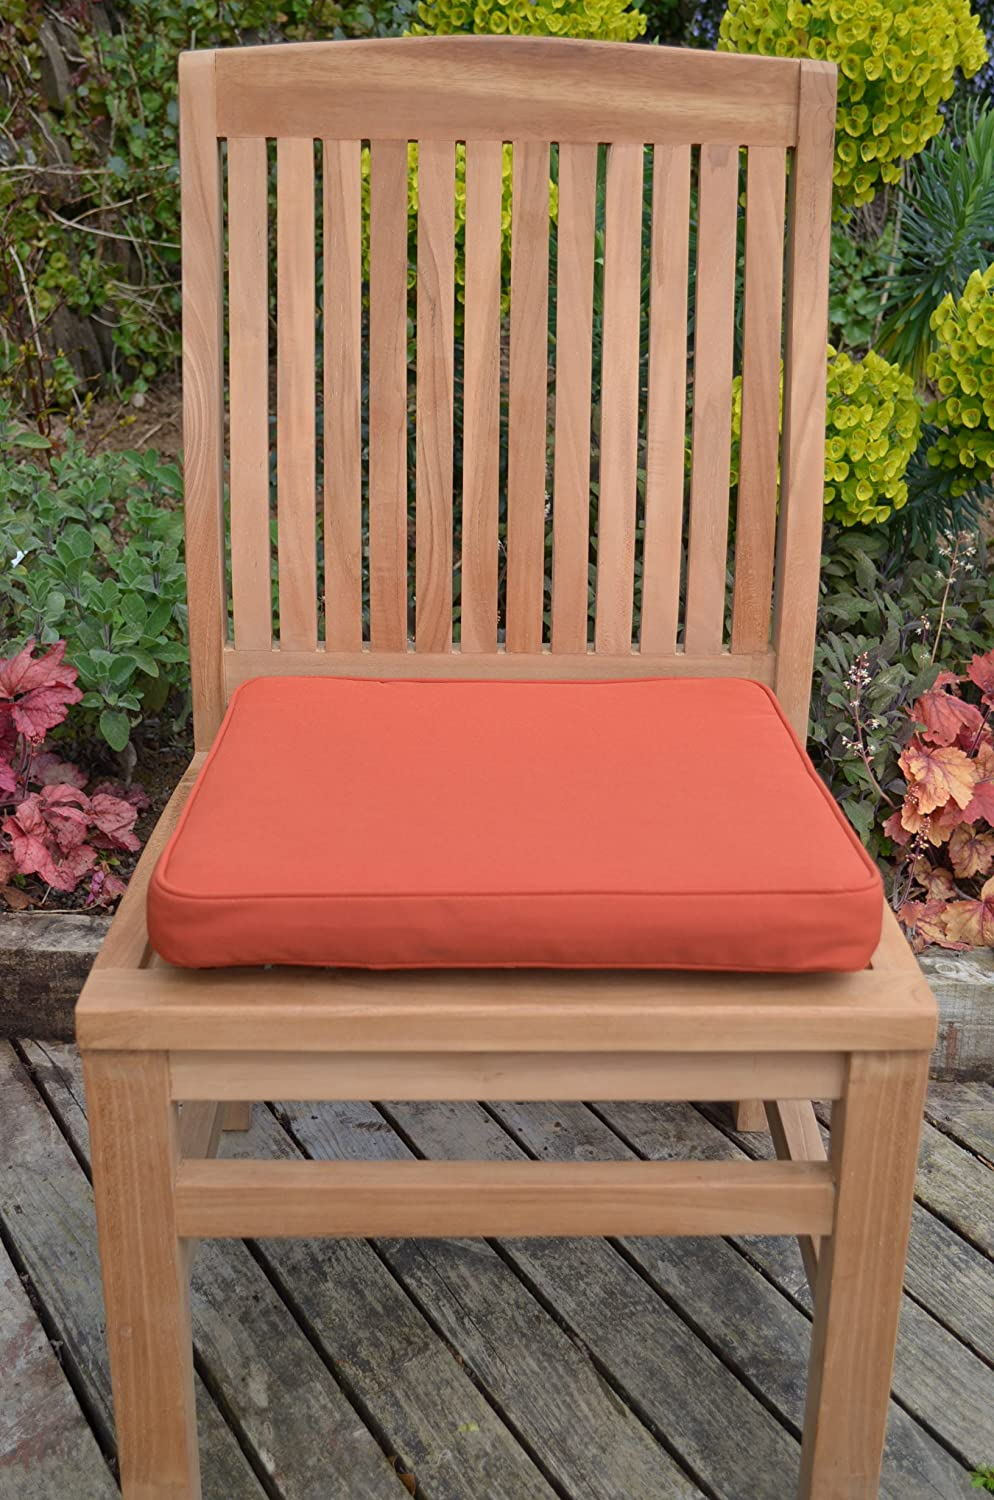 Classic Large Seat Pad Cushion for Indoor/Outdoor Garden Chair (Pack of 2) - Cushions Only - Terracotta Patio Furniture